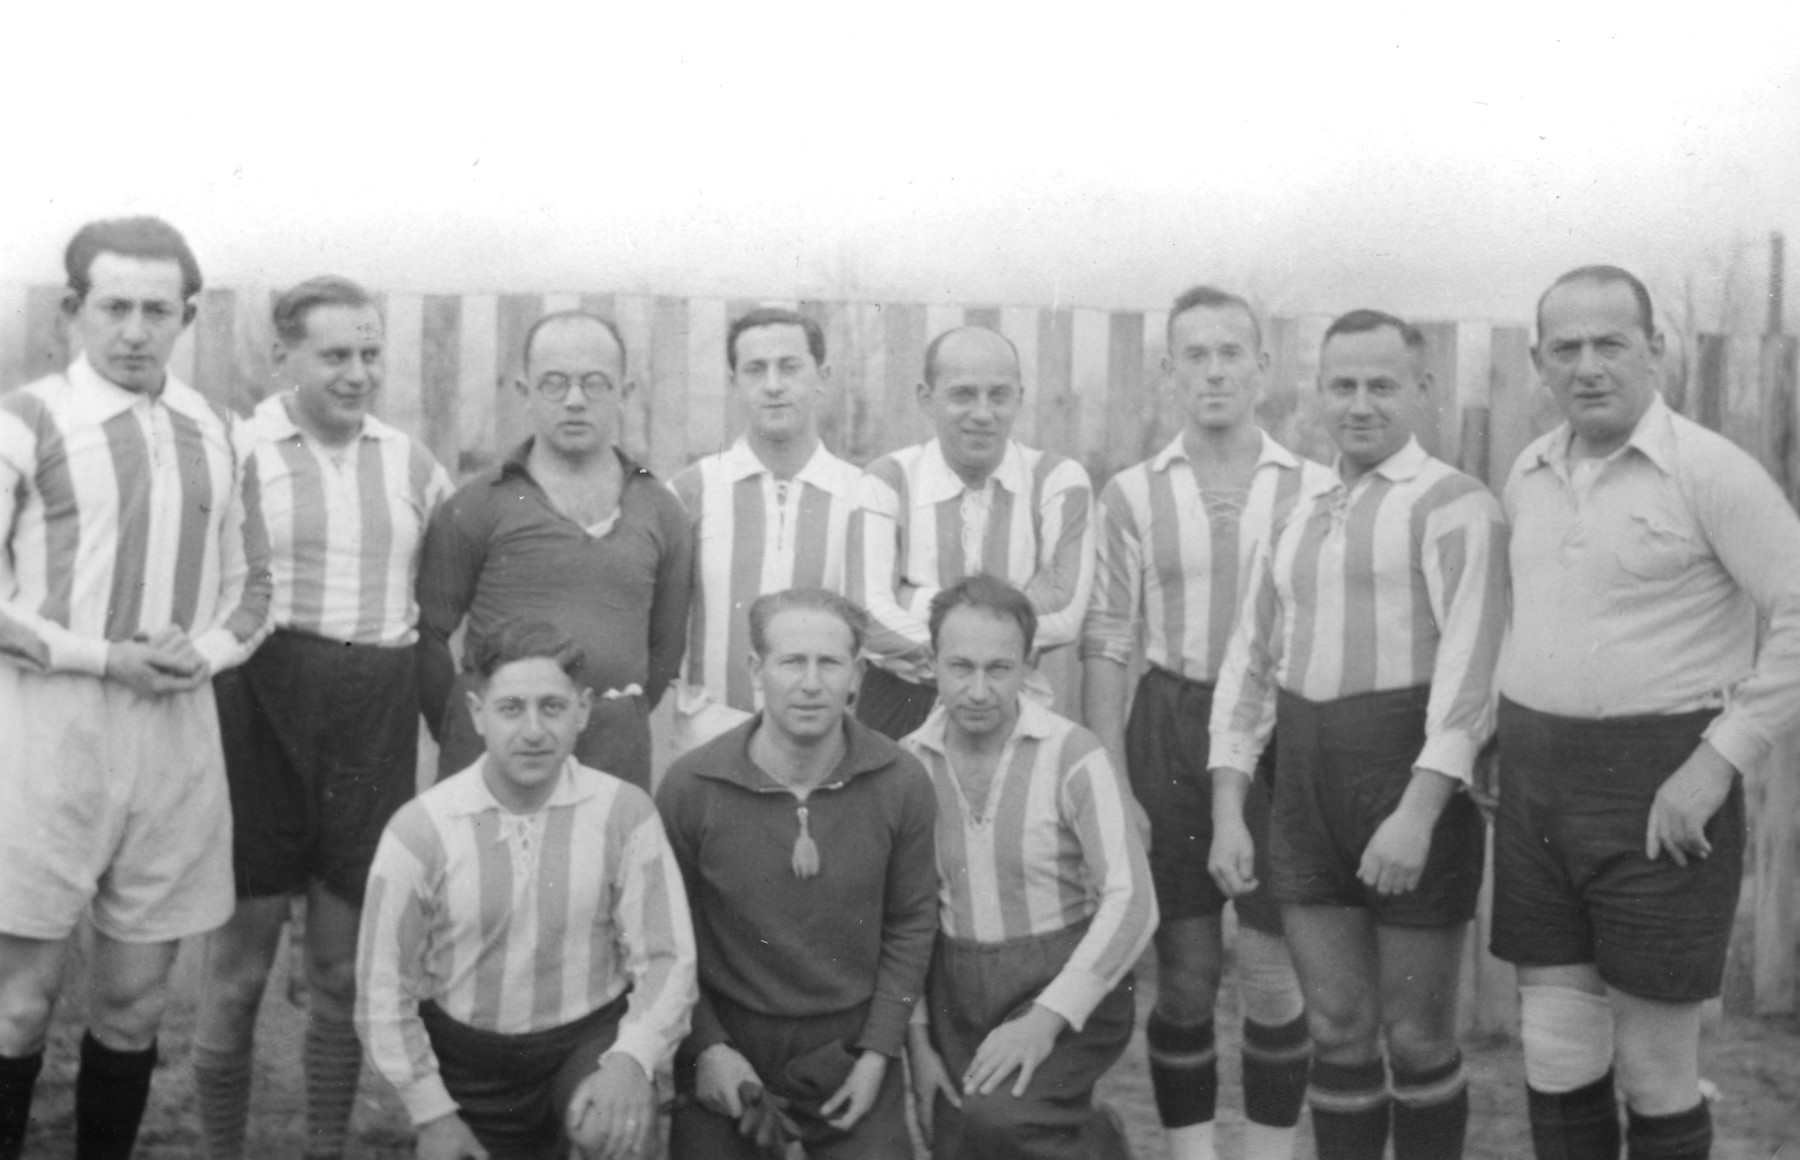 Members of the Bar Kochba soccer team of Breslau, Germany.  Among those pictured are Bruno Fuchs and Wilhelm Brauer.